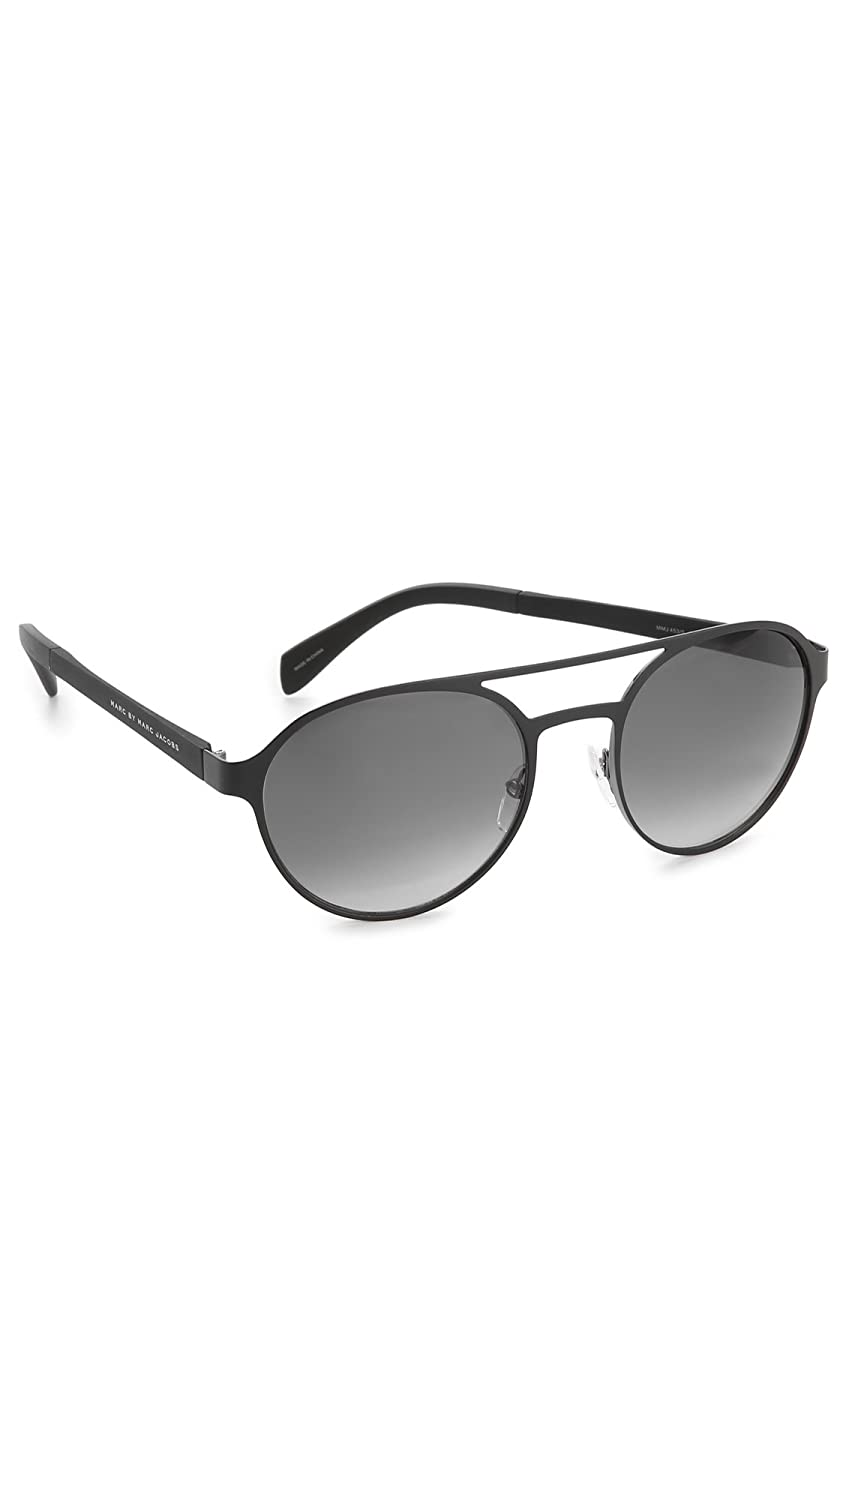 5e2f4dbe6864 Marc by Marc Jacobs Women's Sunglasses Black Black: Marc by Marc Jacobs:  Amazon.co.uk: Clothing